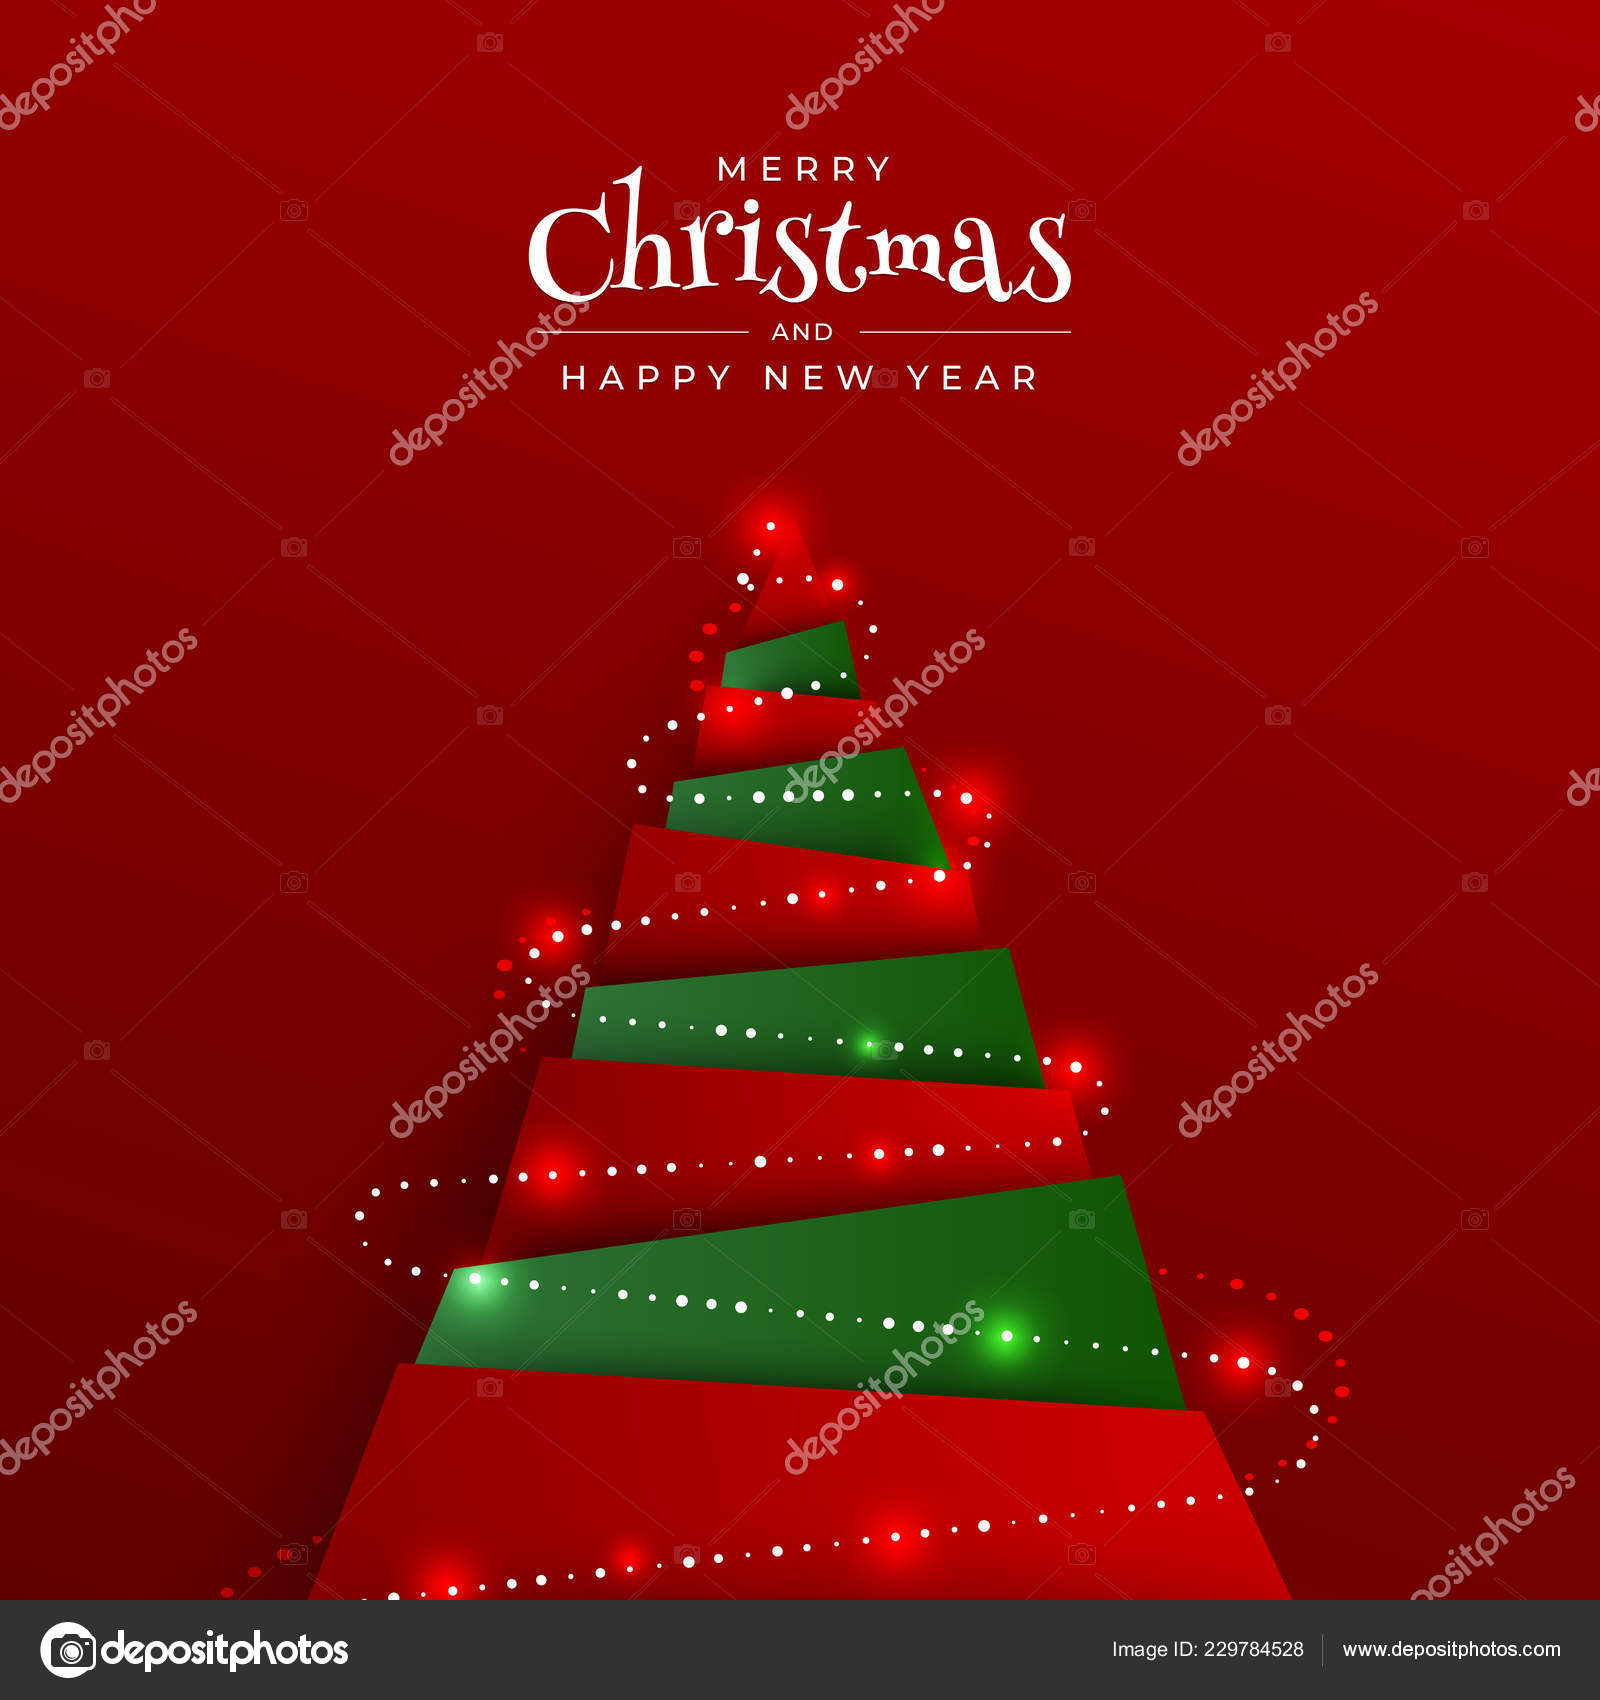 christmas background with border made of cutout gold foil stars and silver snowflakes chic xmas greeting card and happy new year design vector illustrate